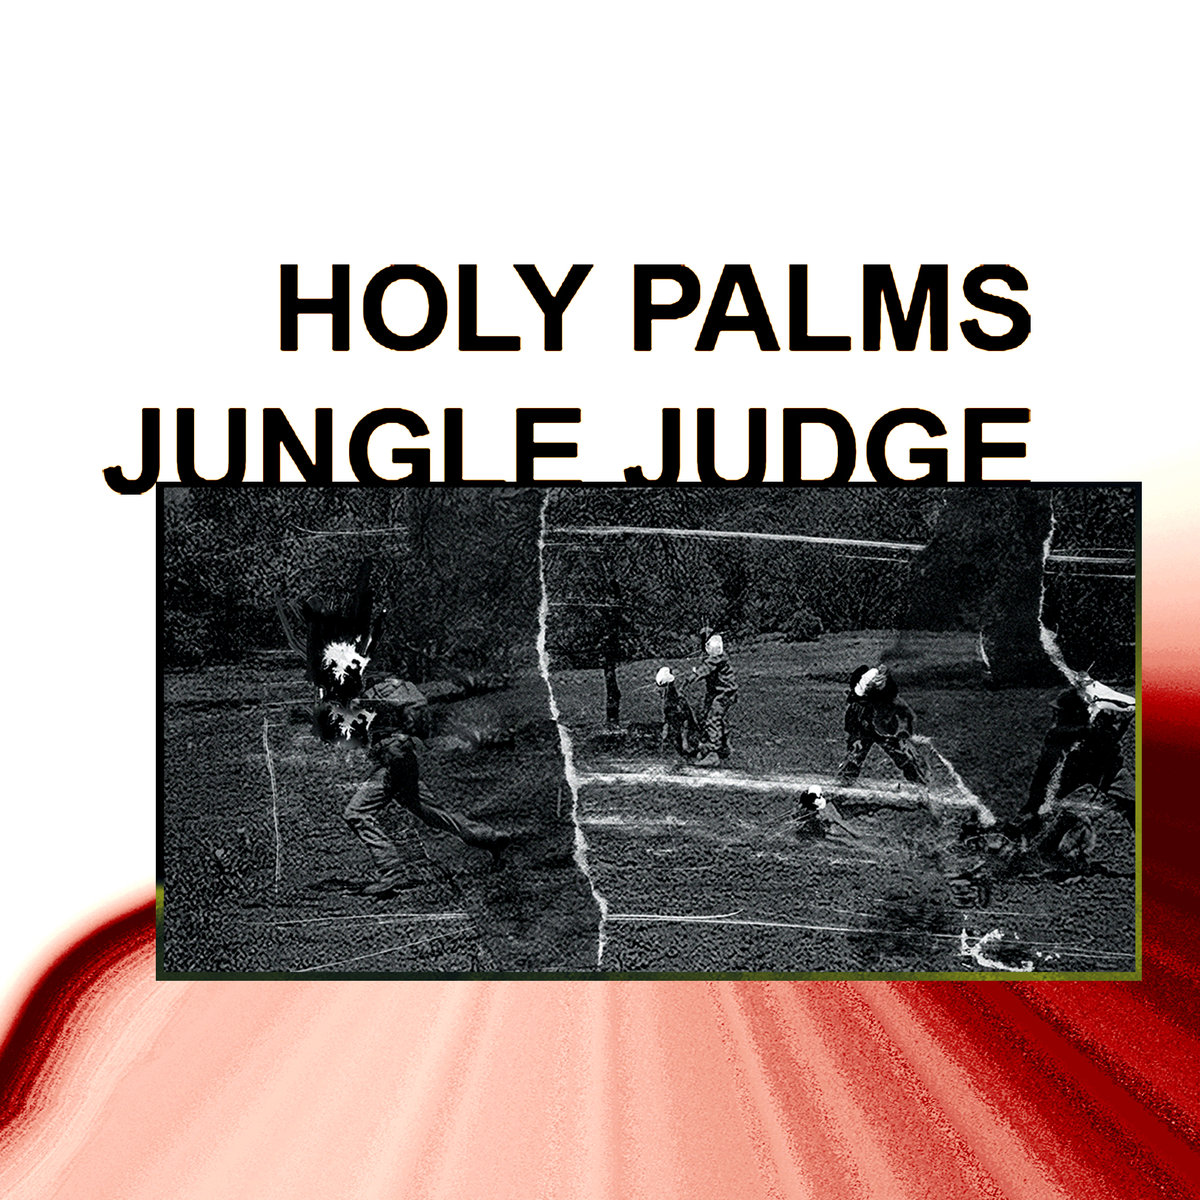 Jungle Judge